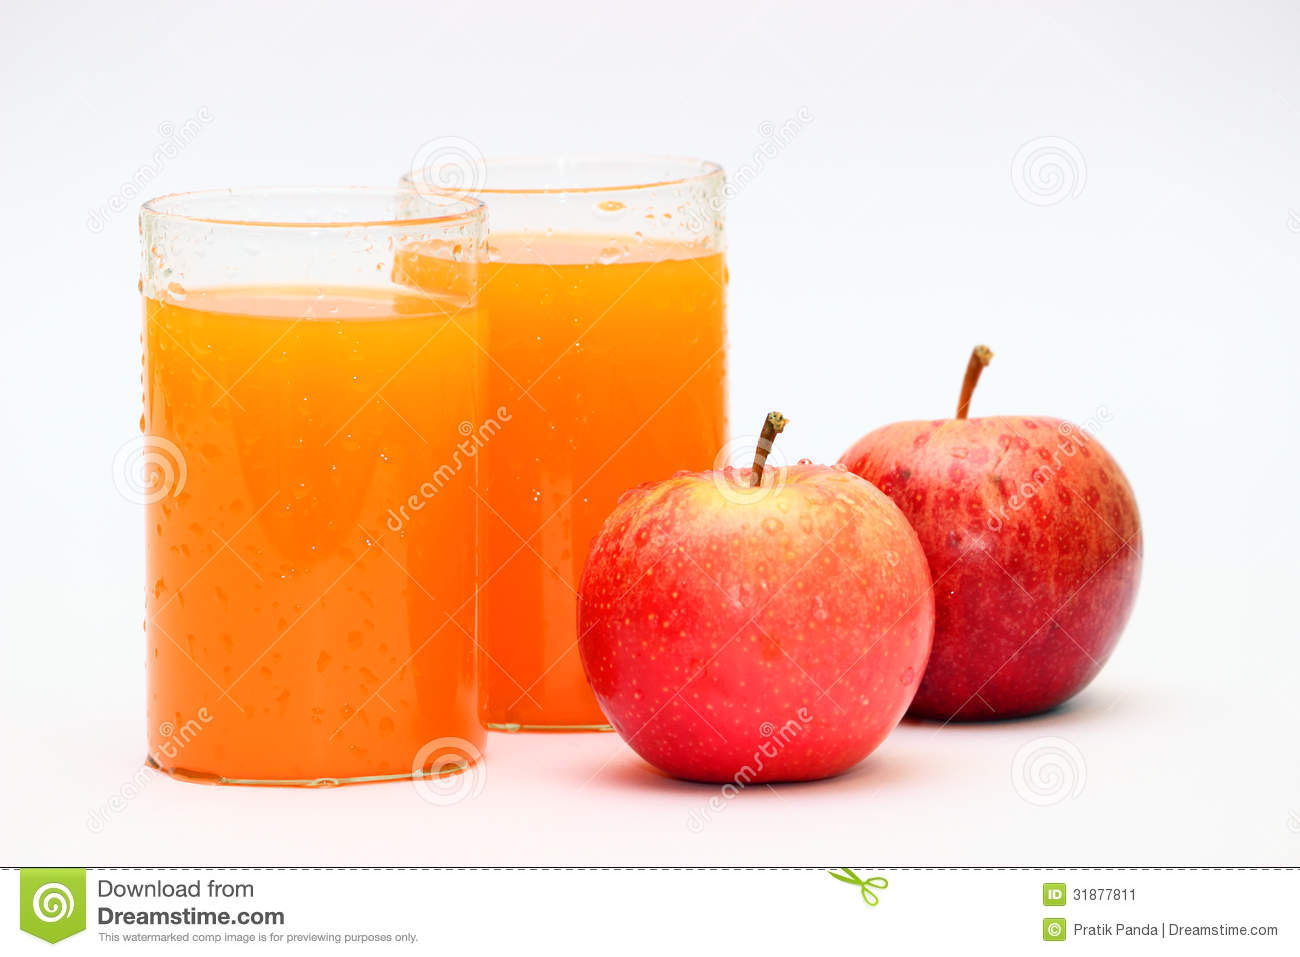 Apple And Orange Fruit Juice Stock Image - Image: 31877811